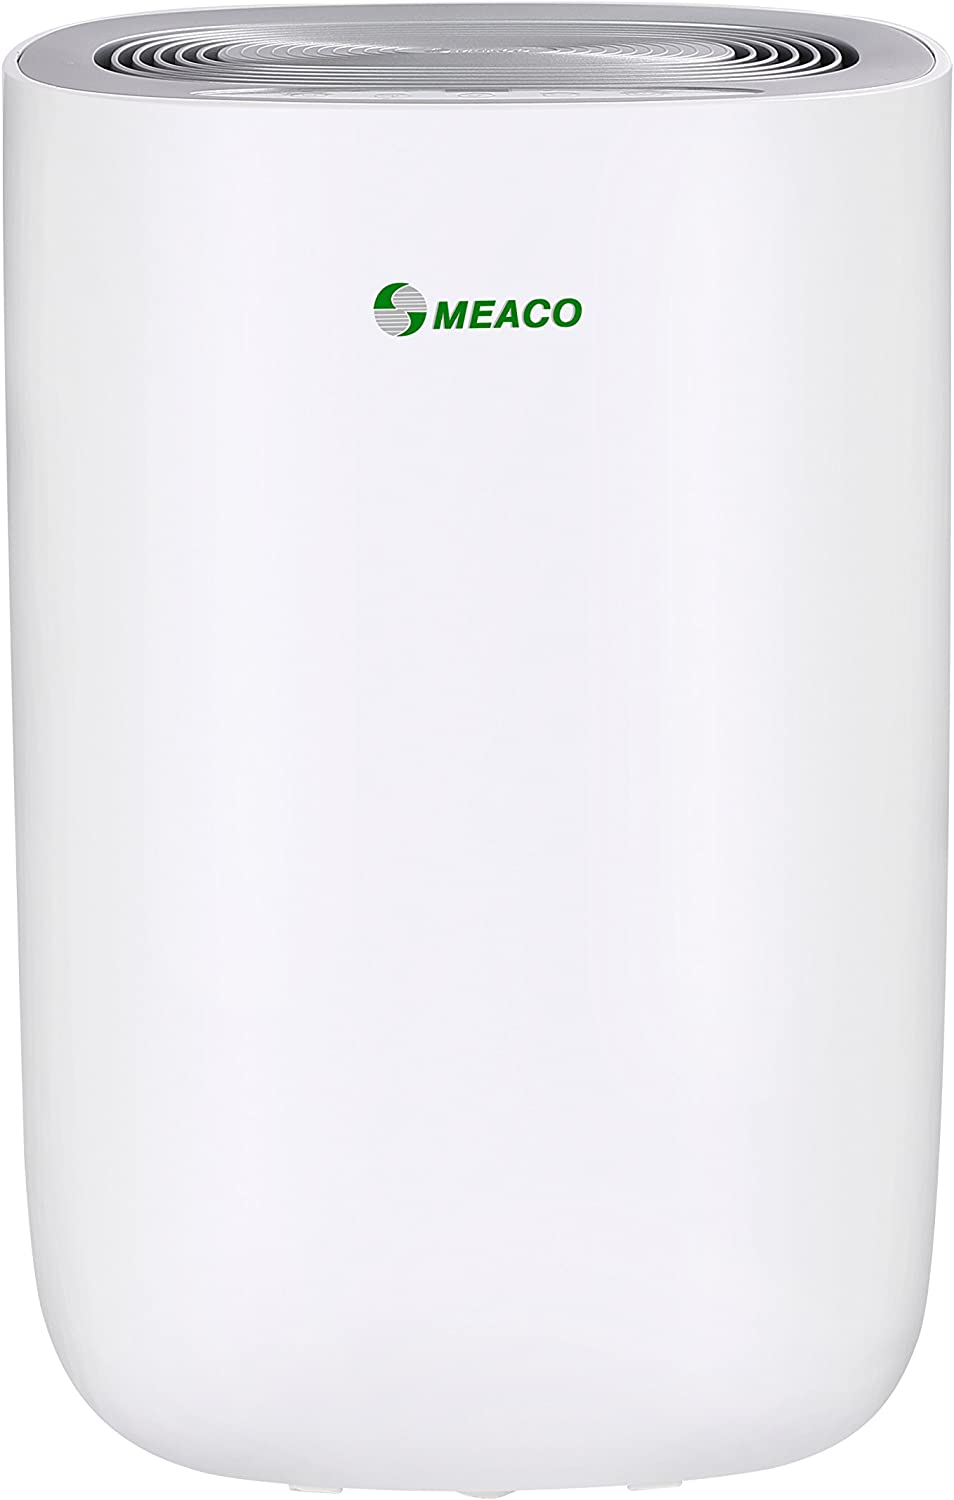 Meaco MeacoDry Dehumidifier ABC Range 12L (Black) Ultra-Quiet, Energy Efficient, Laundry Mode, Auto-off, Choice of Five Colours, Ideal for Damp and Condensation in the Home Silver